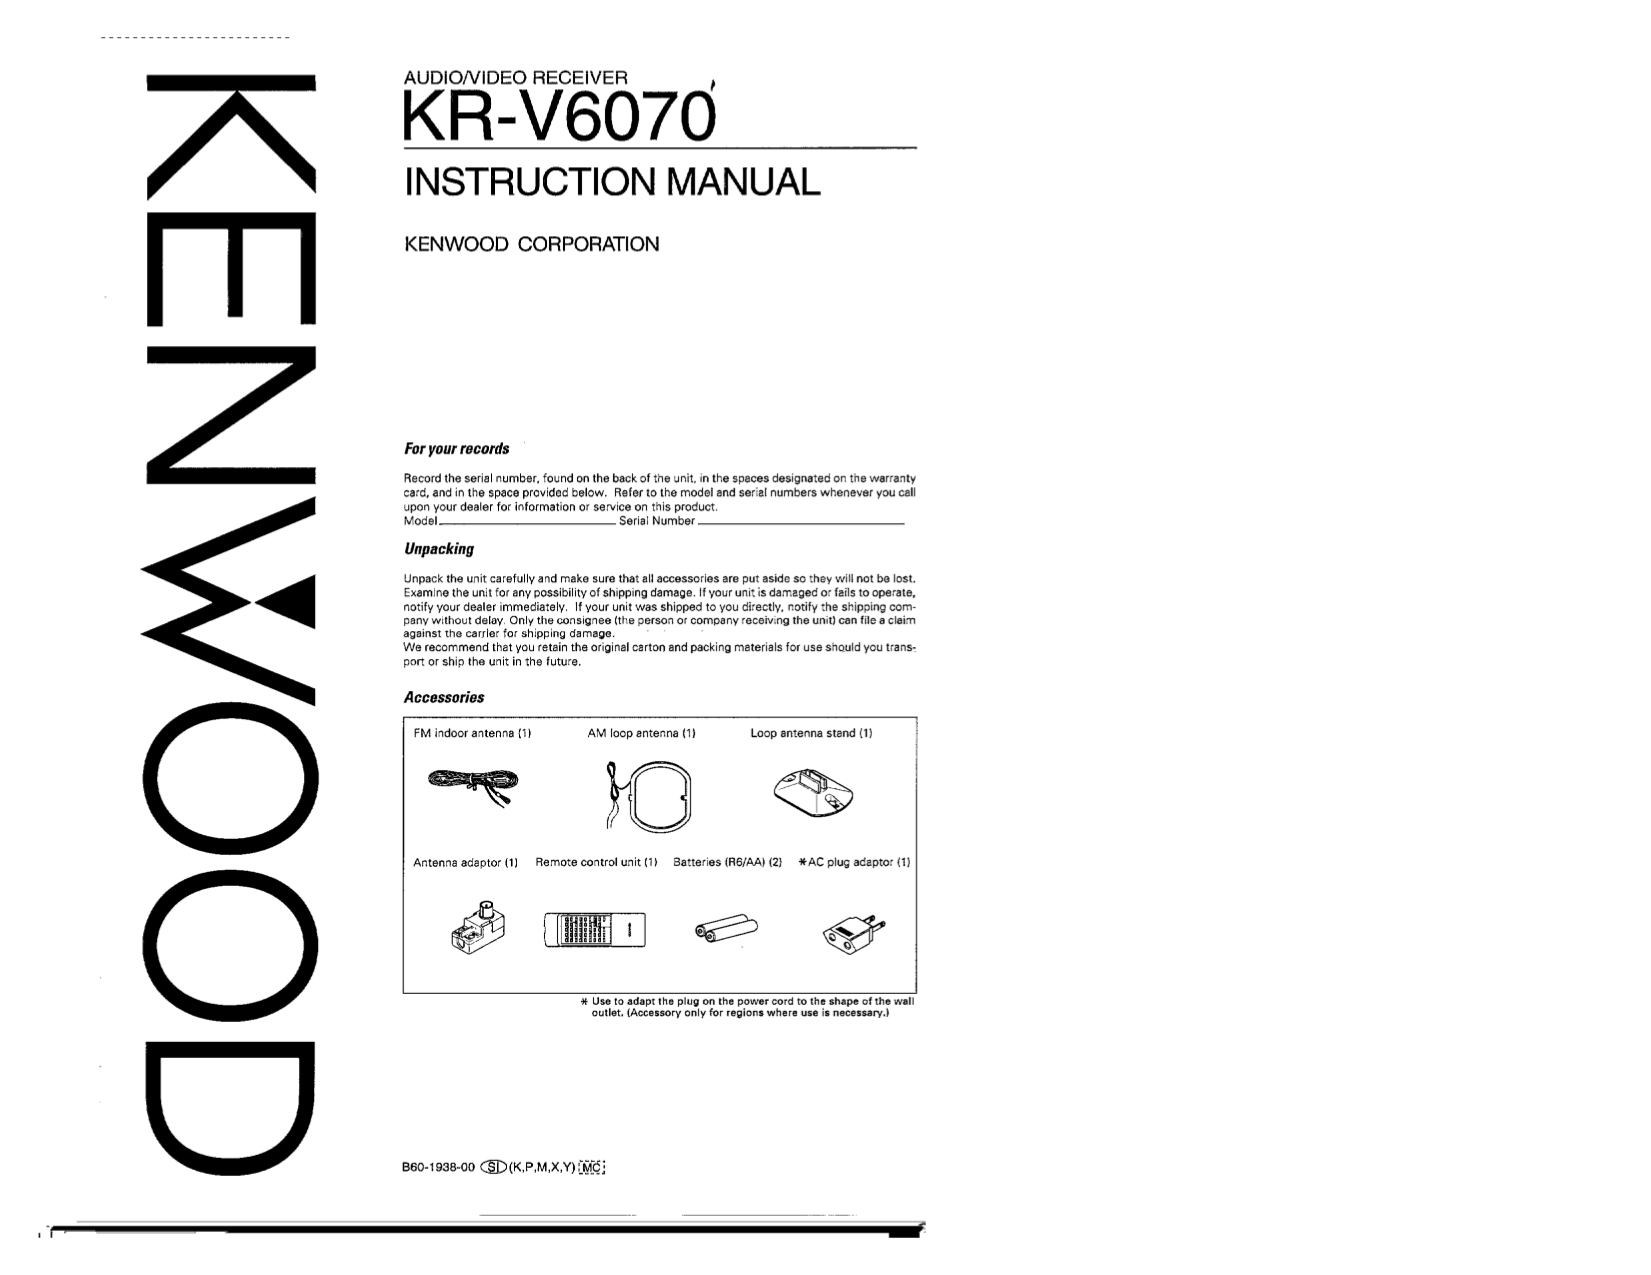 Download free pdf for Kenwood KR-V6070 Receiver manual